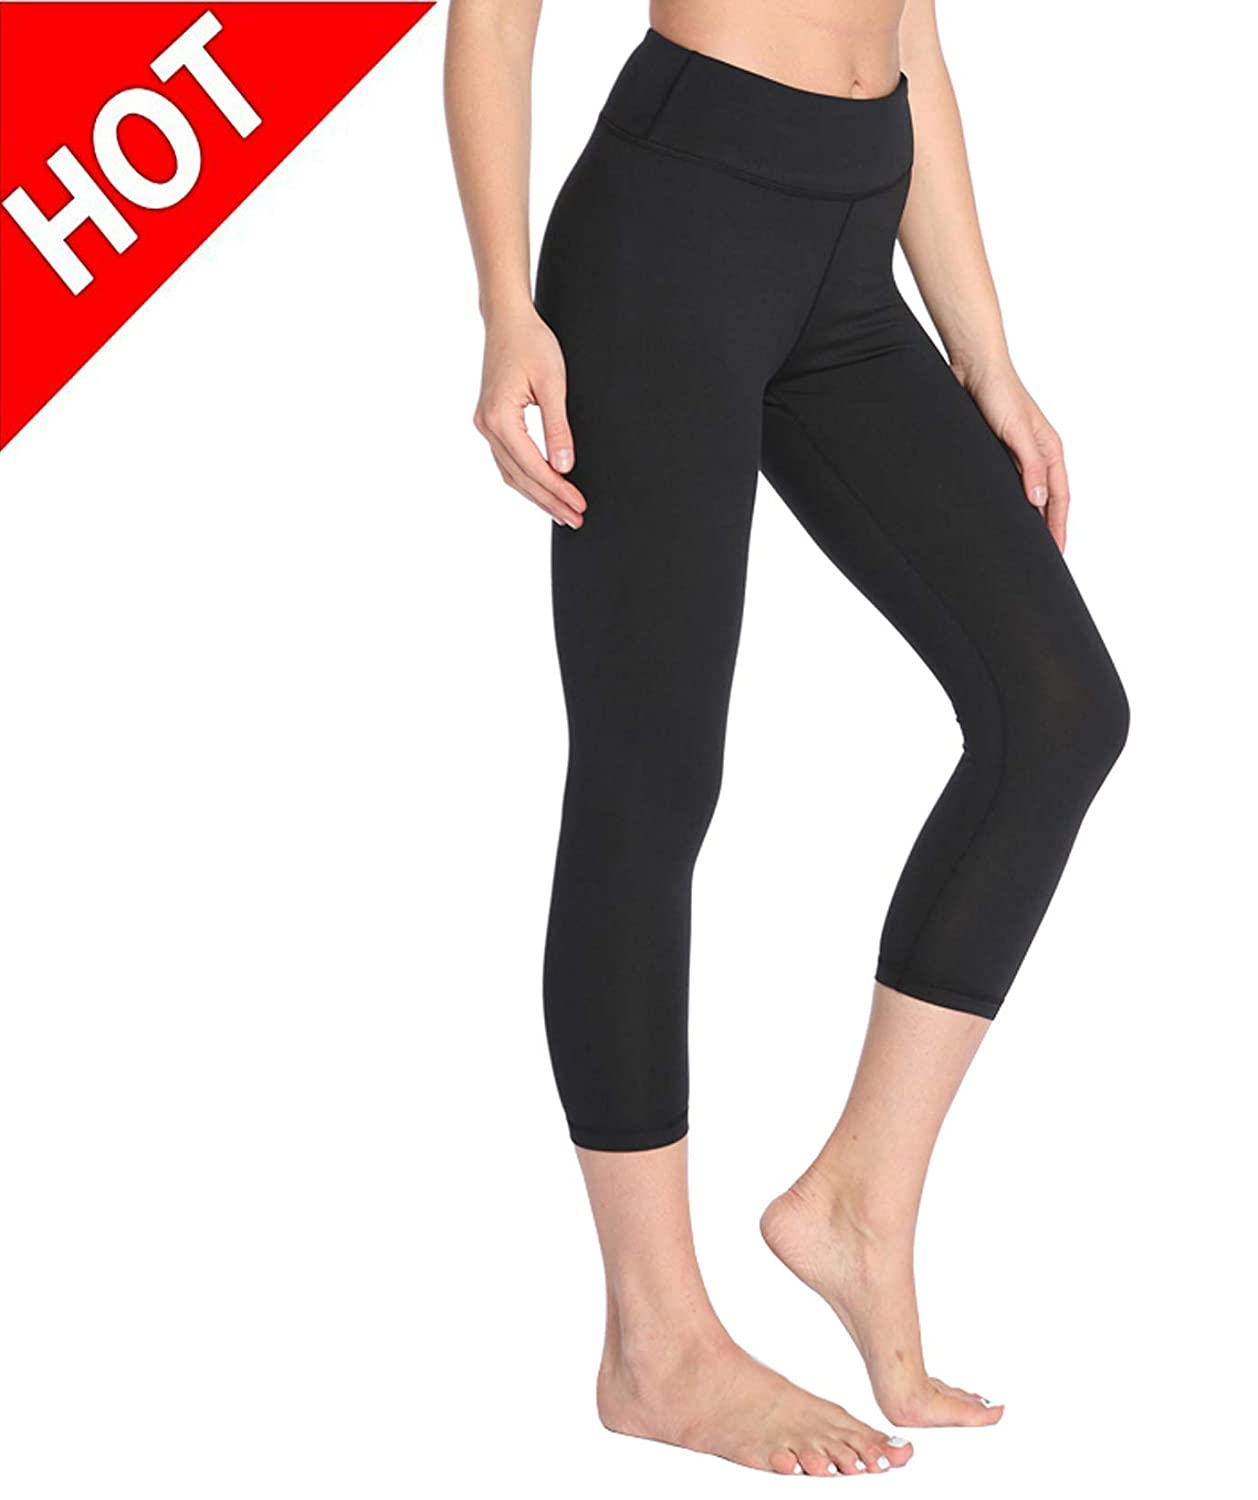 3cbc144bbb45a Online Cheap wholesale Olacia Black Womens Yoga Pants Workout Leggings -  Tummy Control Athletic Running 4 Way Stretch Yoga Leggings Suppliers